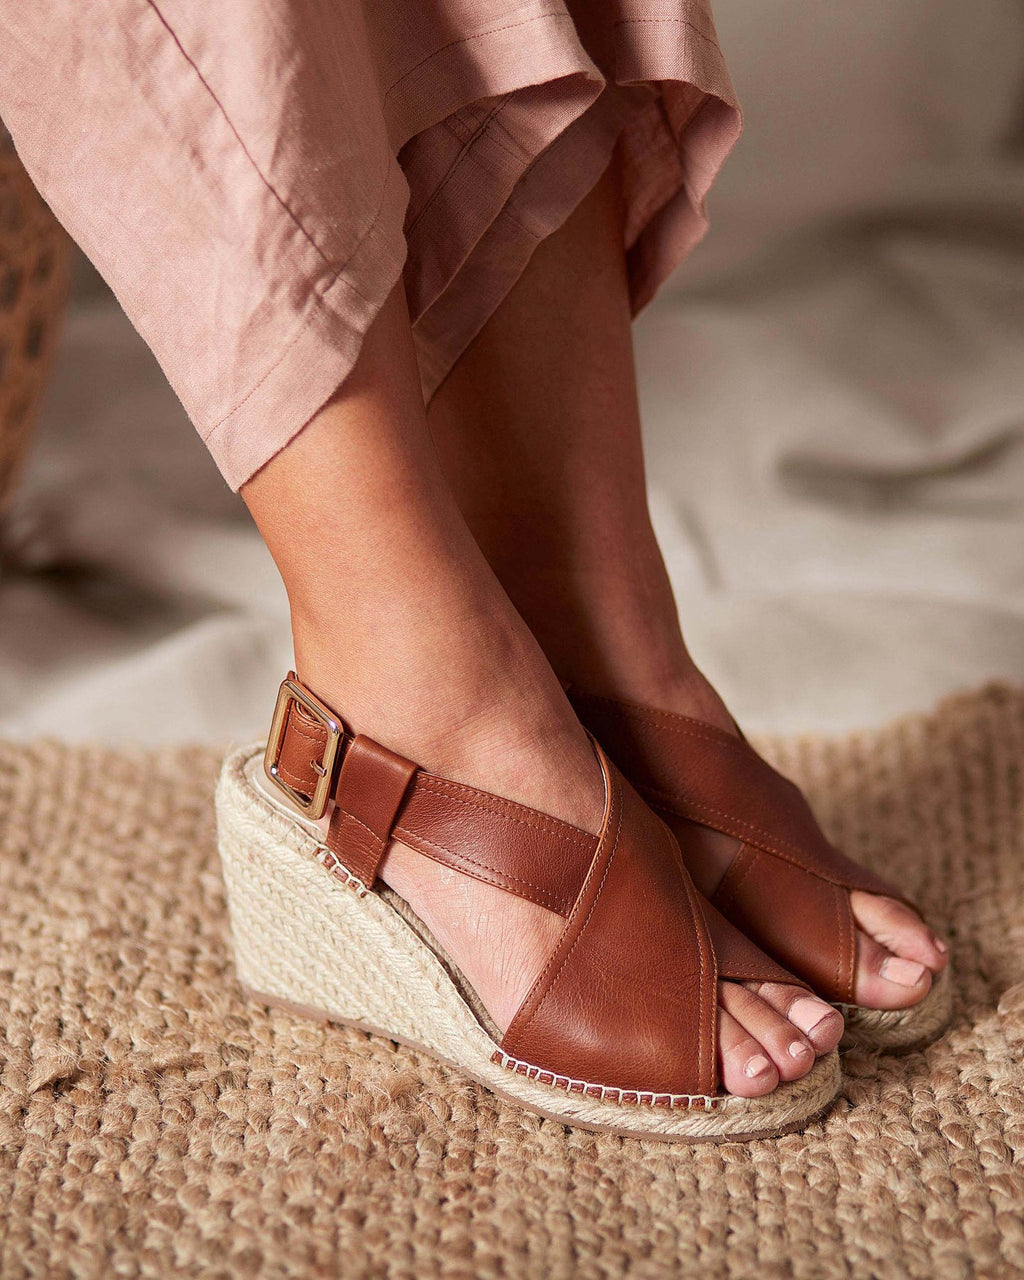 Walnut Melbourne Vera Wedge - Tan Leather